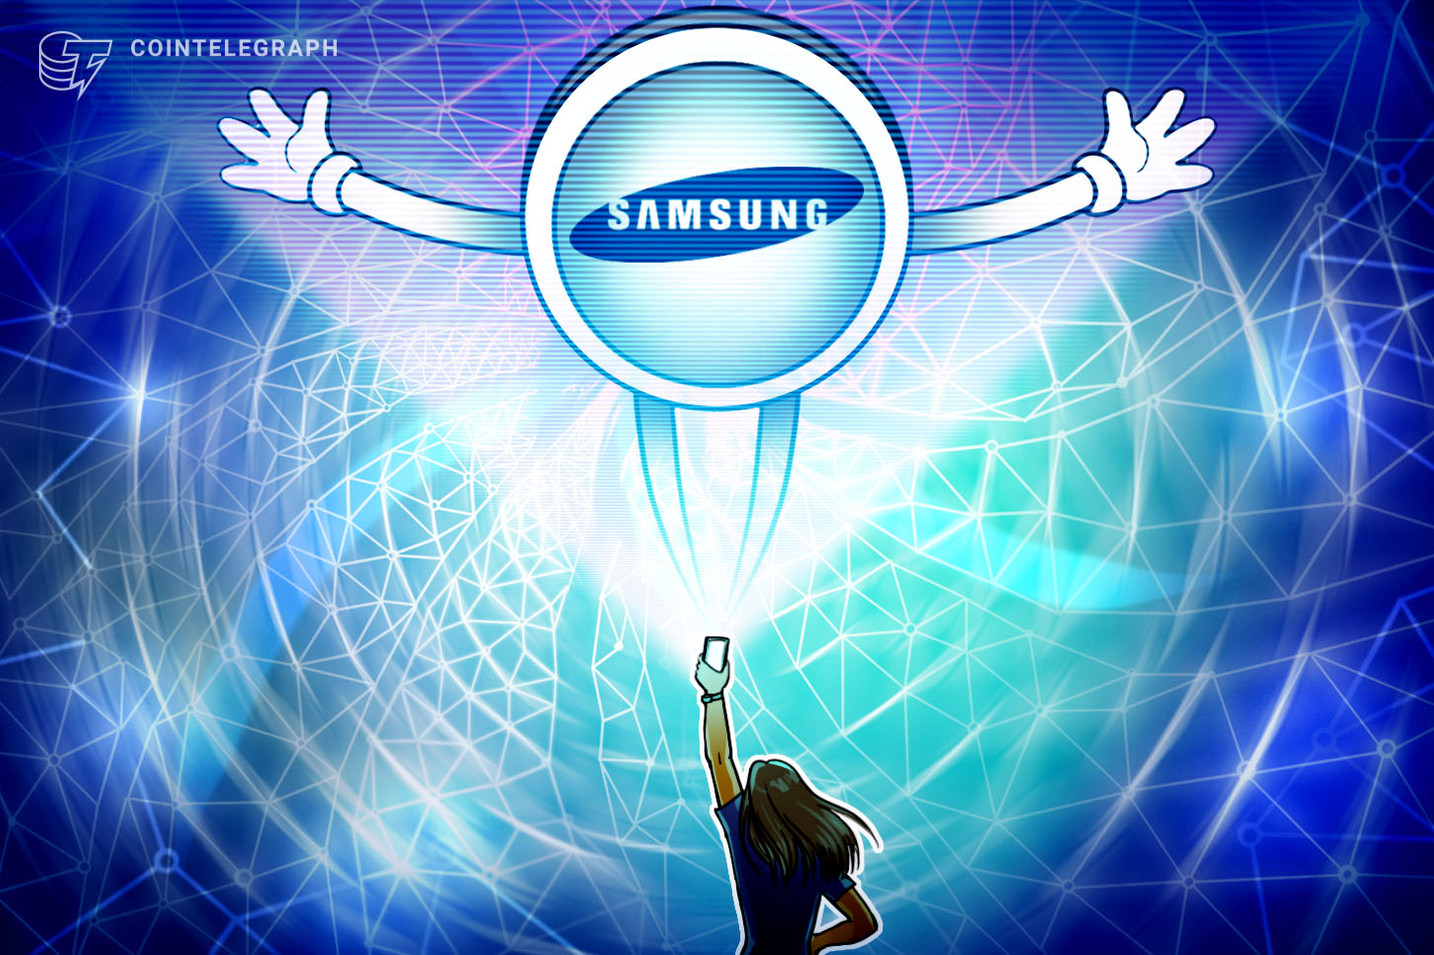 Samsung SDS Includes Blockchain Within Digital Transformation Framework